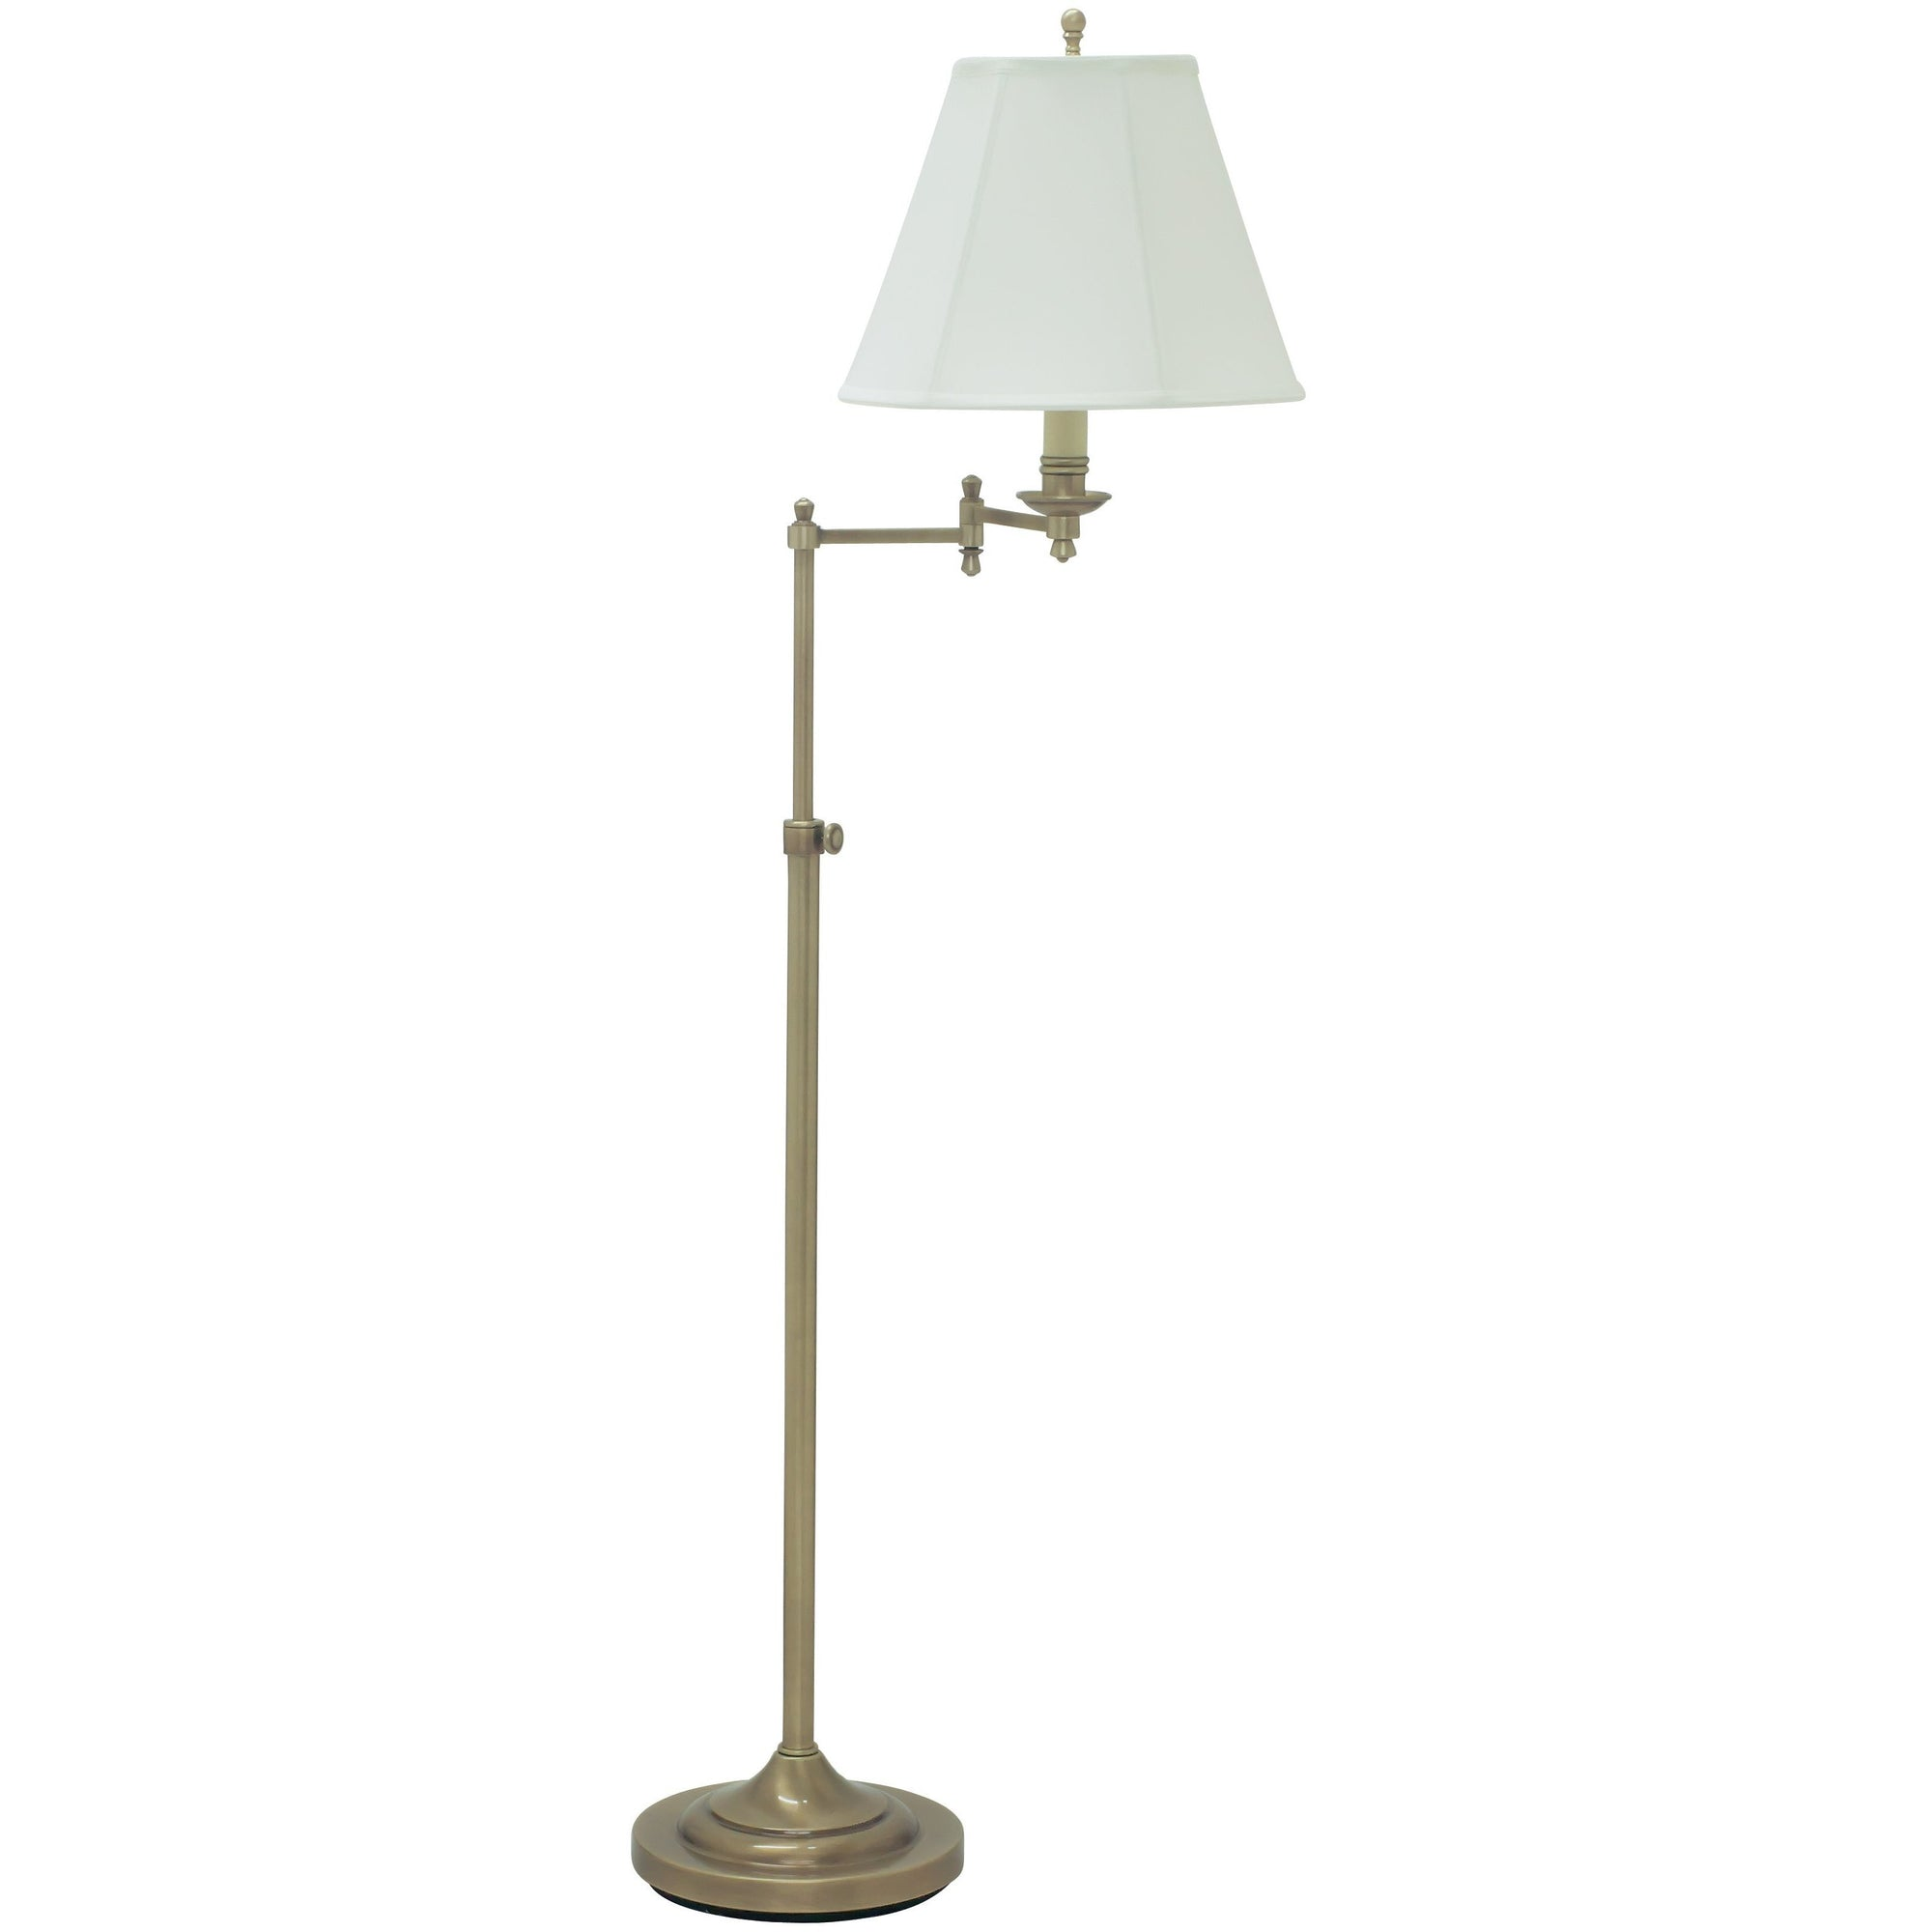 House Of Troy Floor Lamps Club Adjustable Swing Arm Floor Lamp by House Of Troy CL200-AB